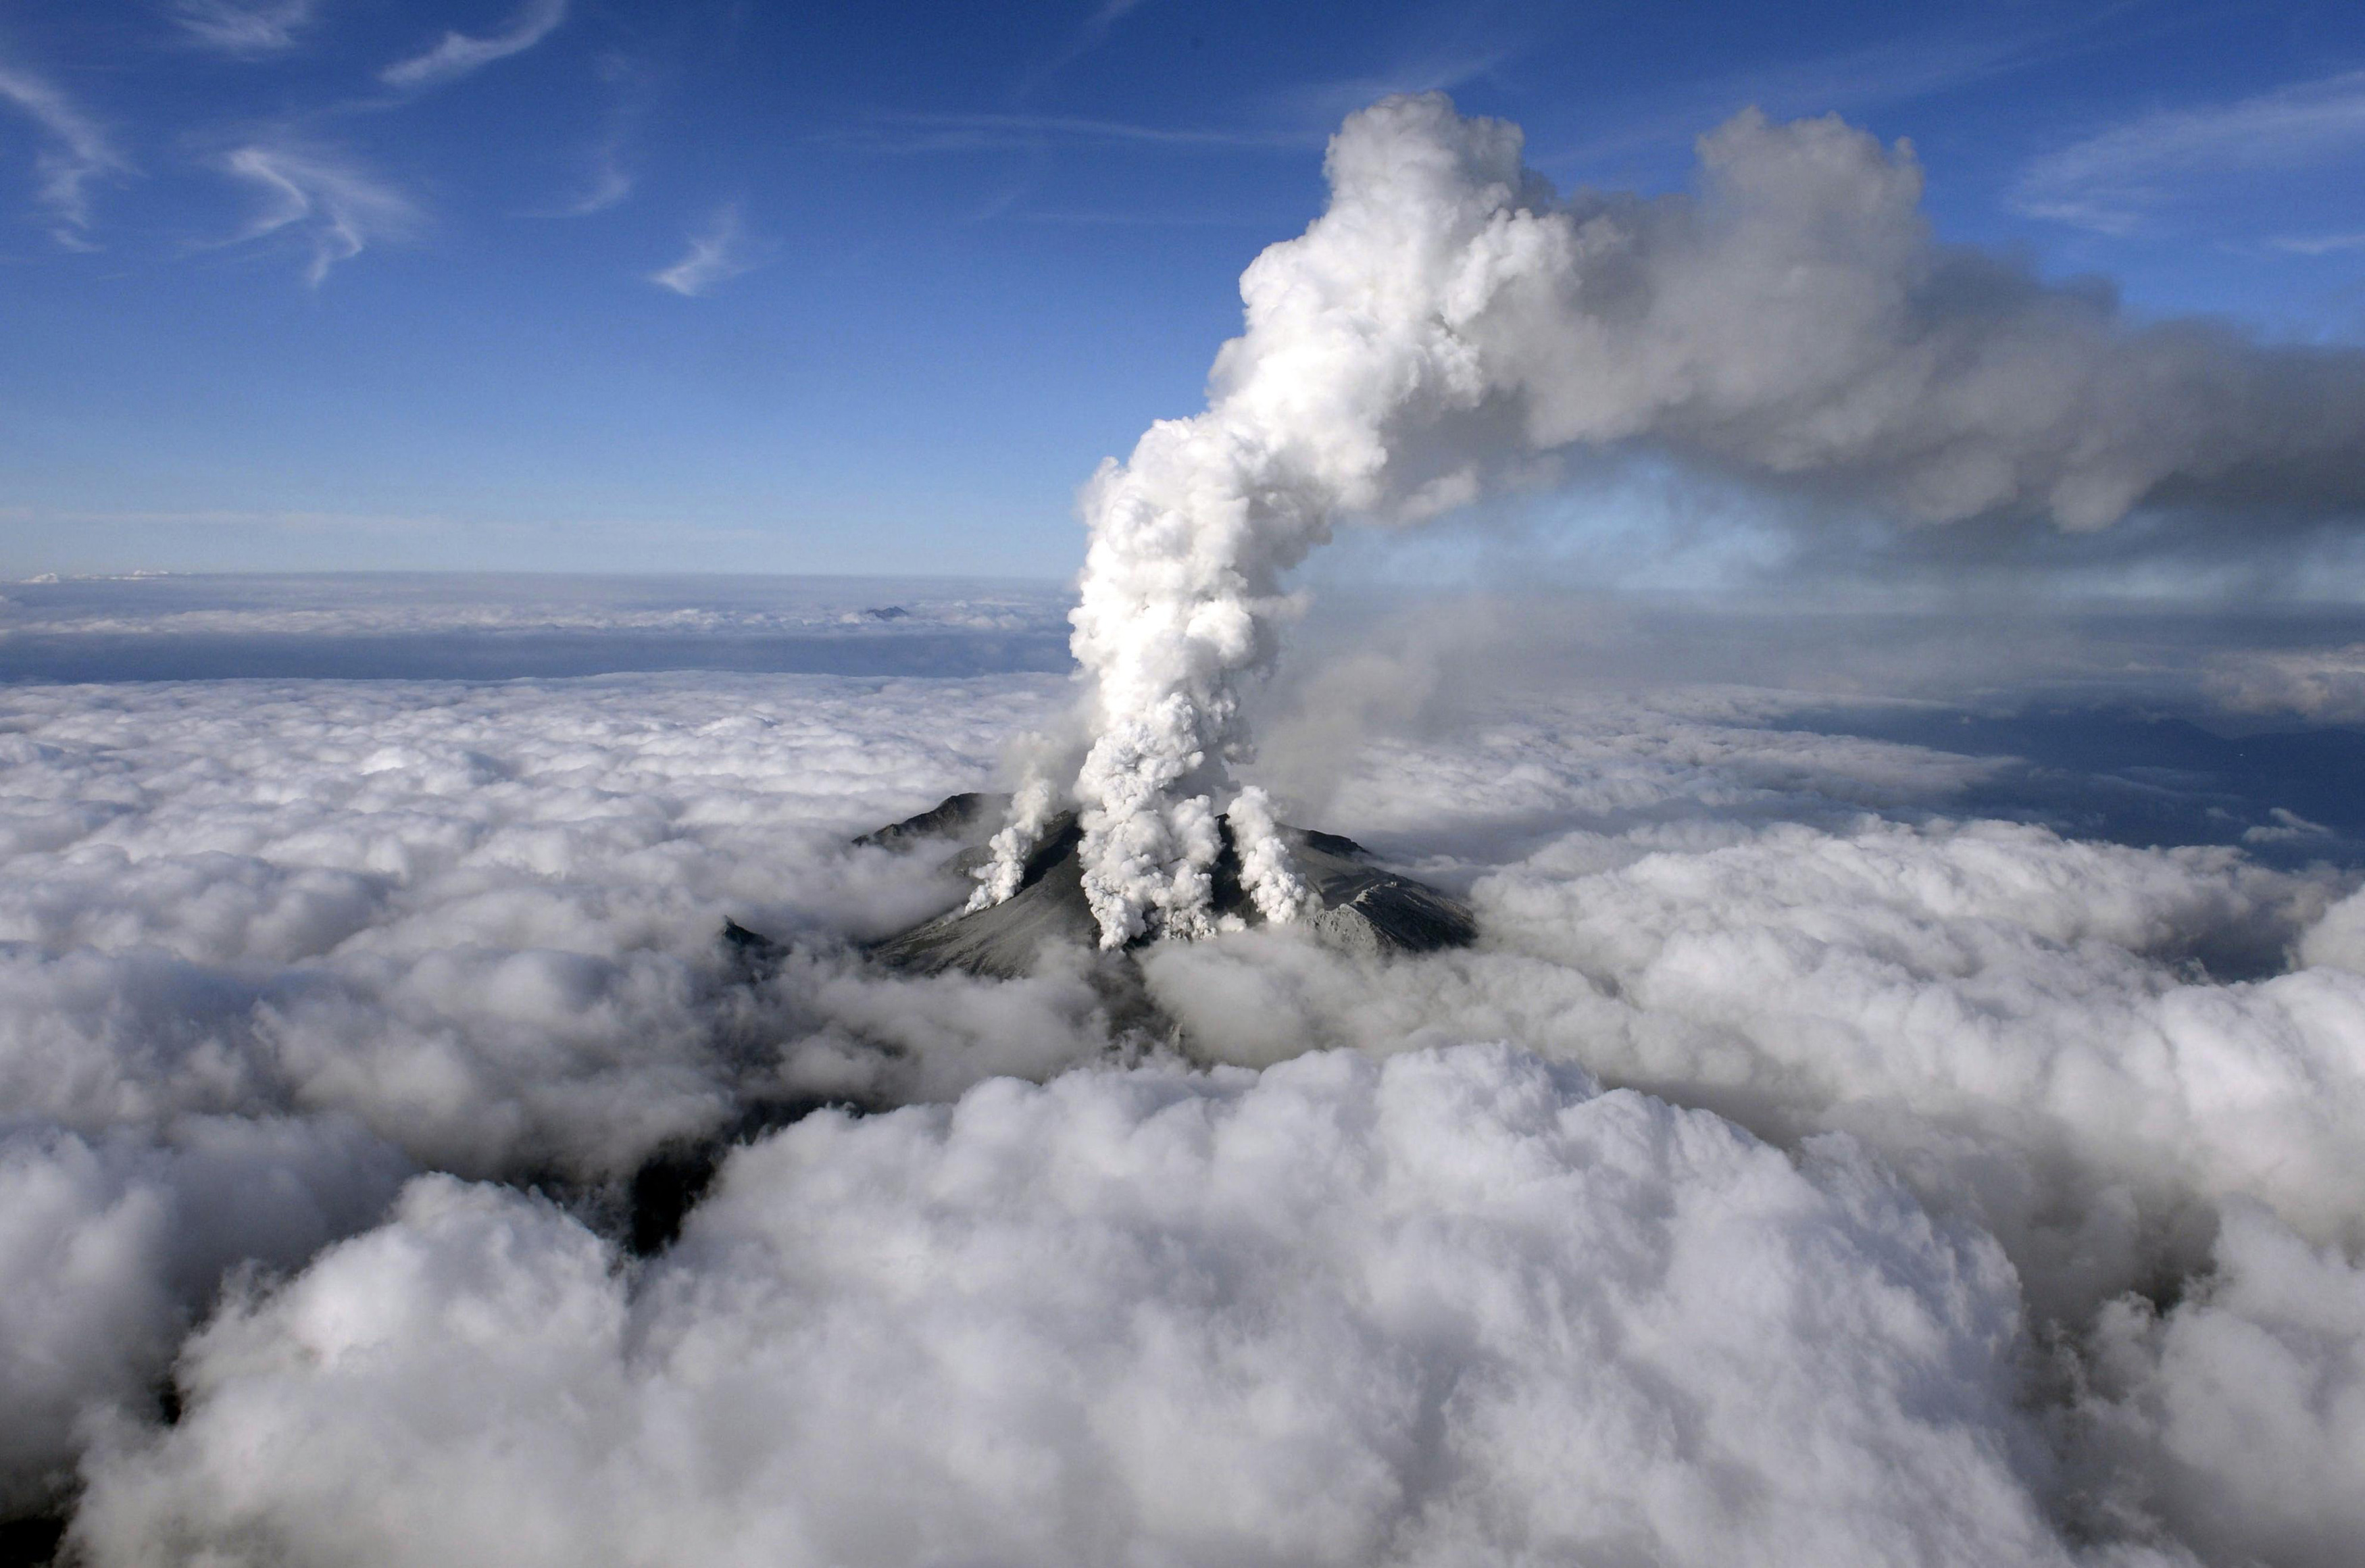 Volcanic smoke rises from Mount Ontake, which straddles Nagano and Gifu prefectures, central Japan on Sept. 27, 2014.